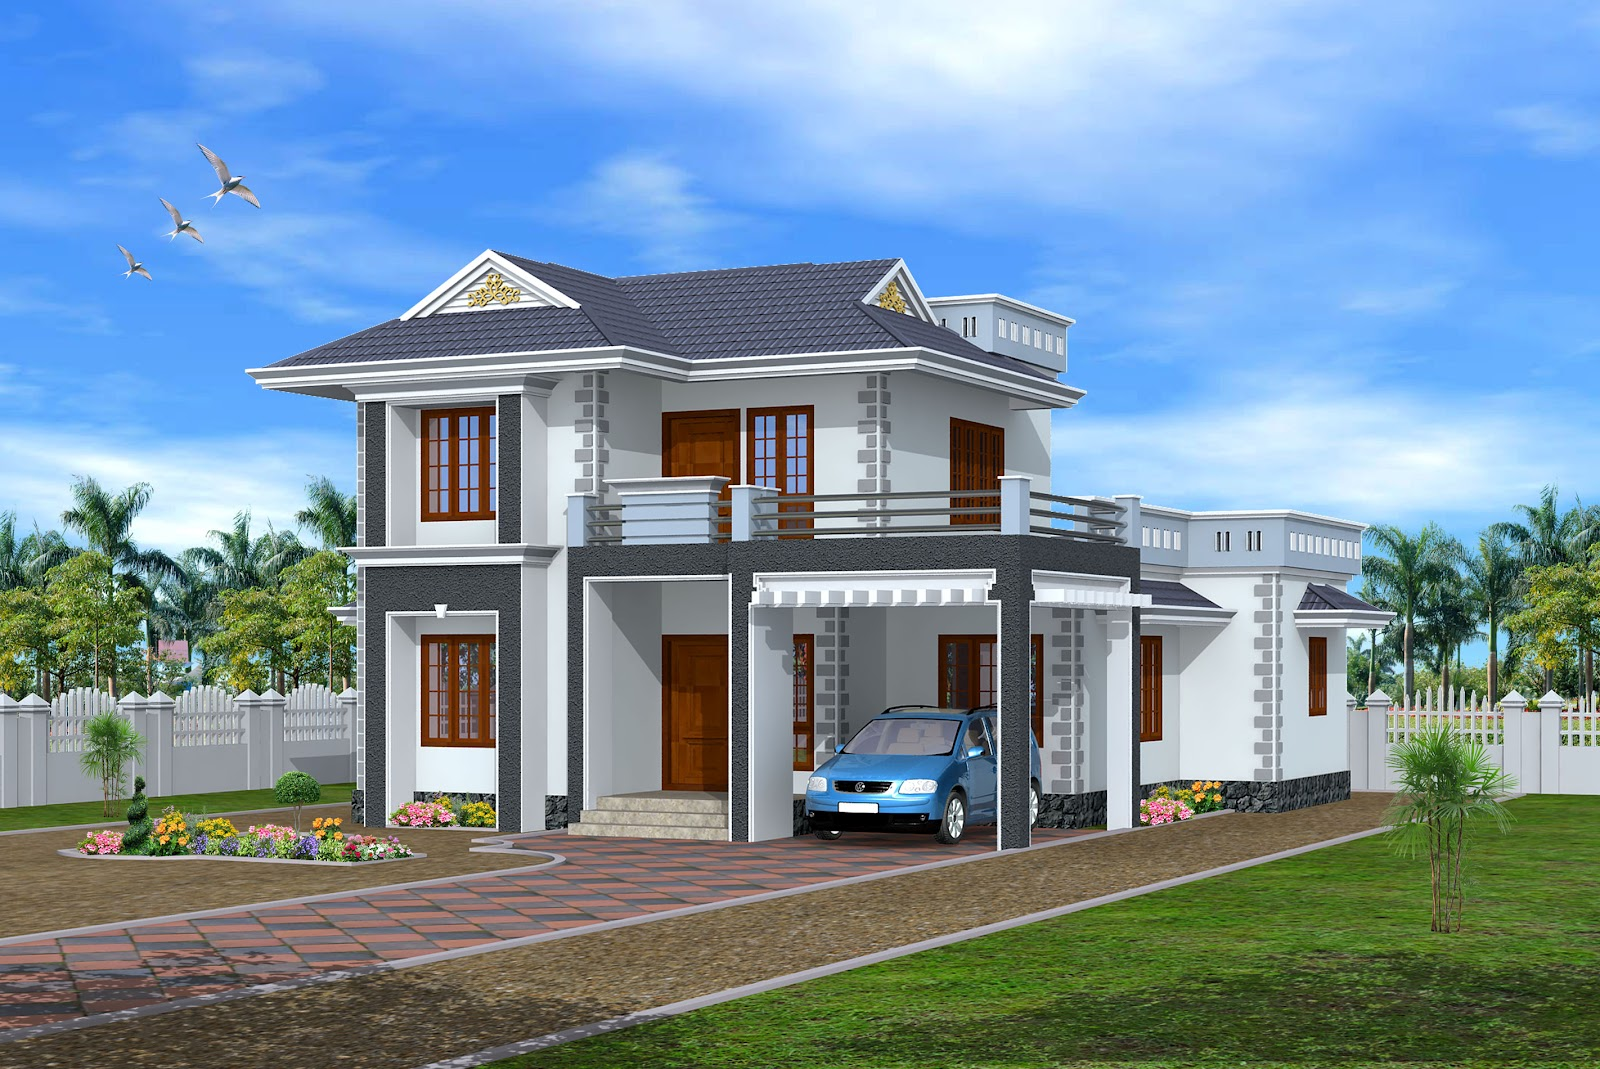 New home designs latest modern homes exterior designs views Dream designer homes